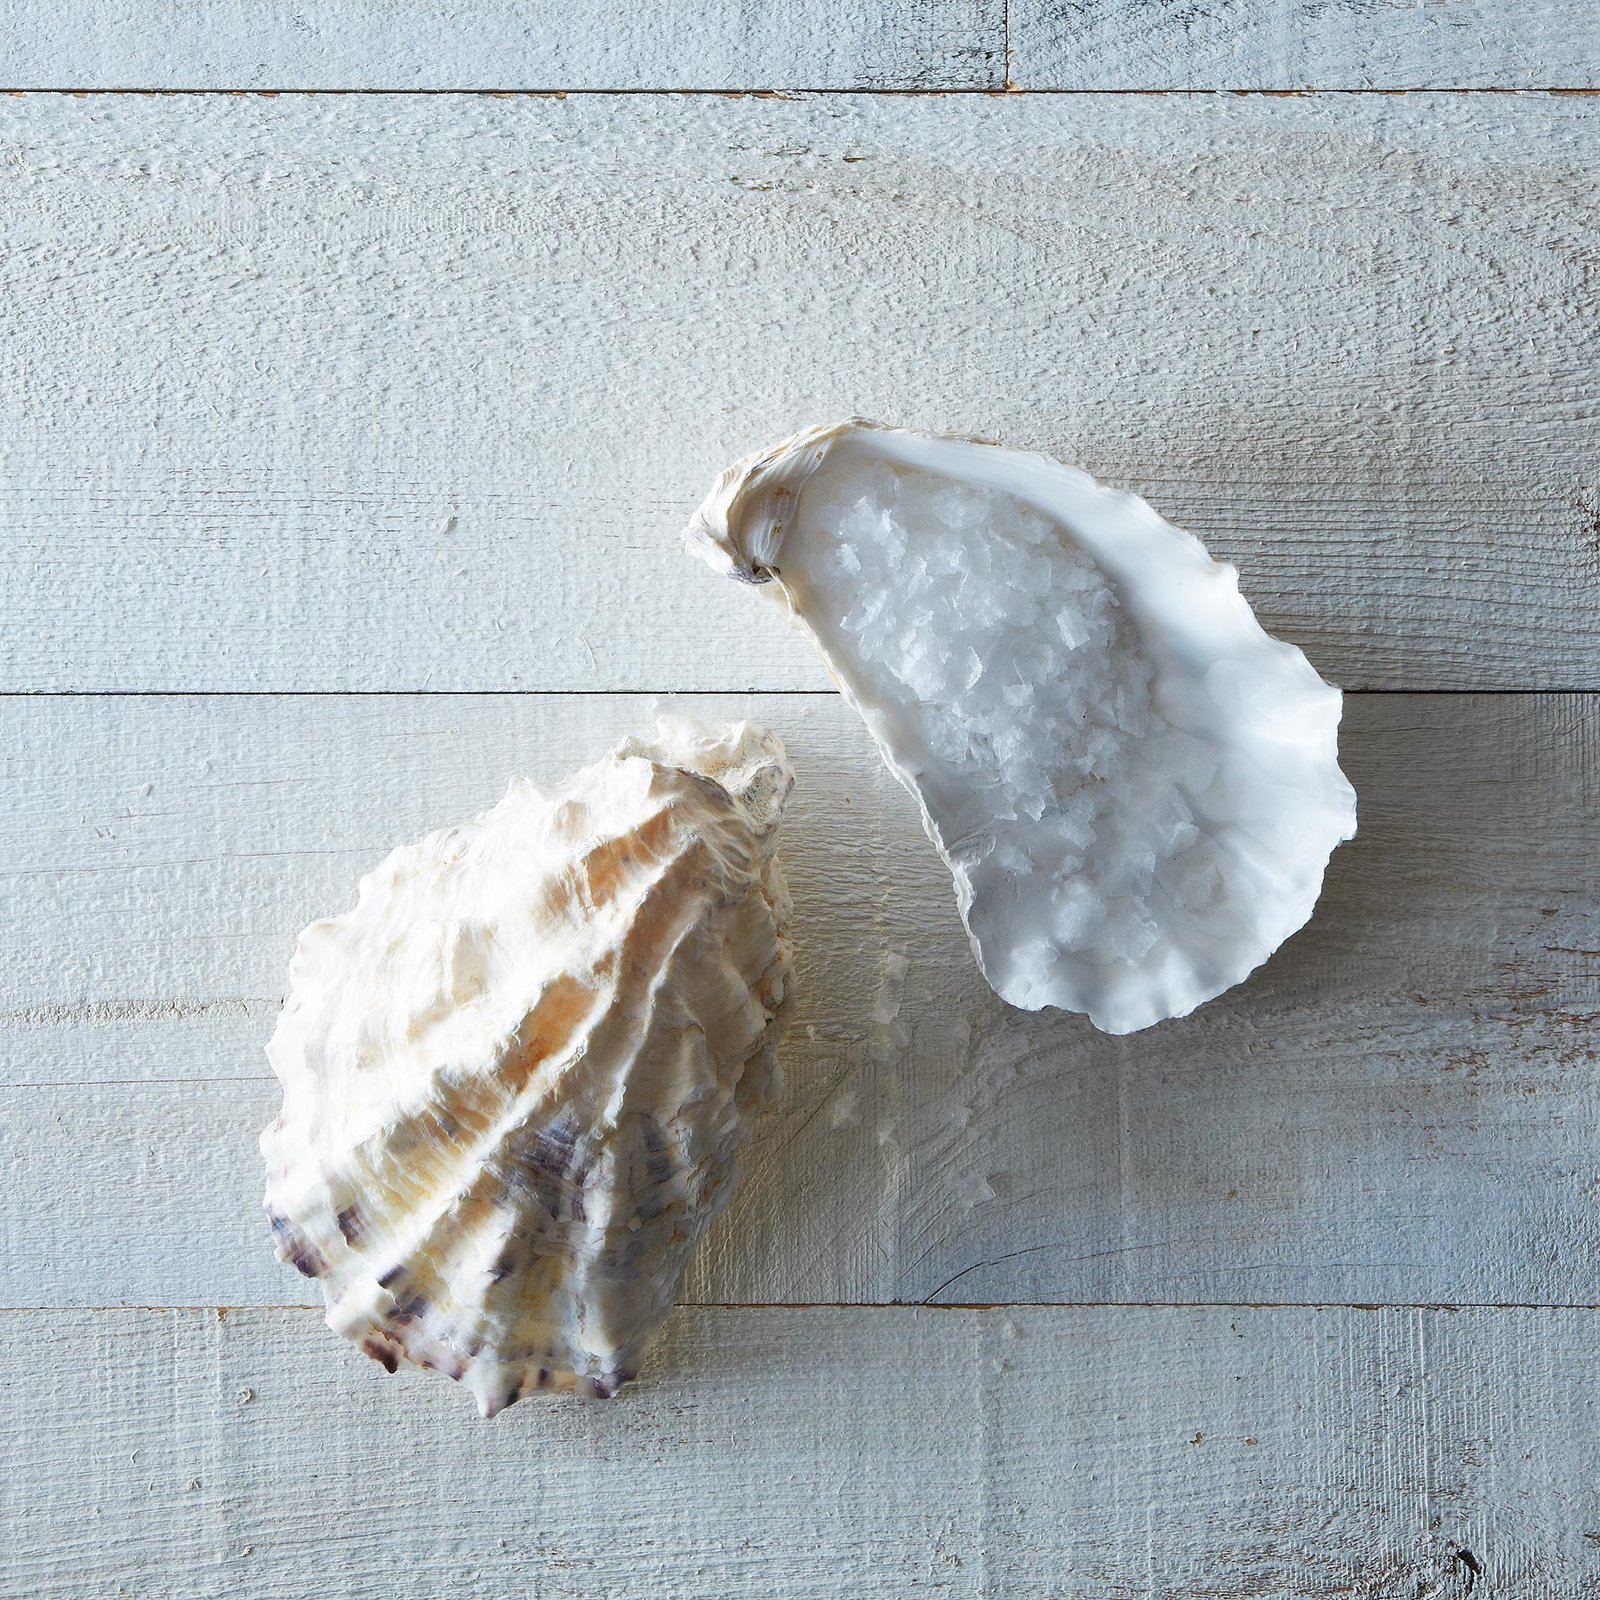 """""""Ben Jacobsen of Jacobsen's Salt Co. in Oregon, collects these oyster shells in the bay where he draws the sea water for his flakey sea salt. We use the shells for holding salt, coarsely ground pepper, and sliced citrus; we also think they make a fine soap dish."""" Jacobsen's Oyster salt cellar pair at Provisions, $16  Photo 9 of 10 in Cooking Expert-Approved Kitchenware from Provisions"""